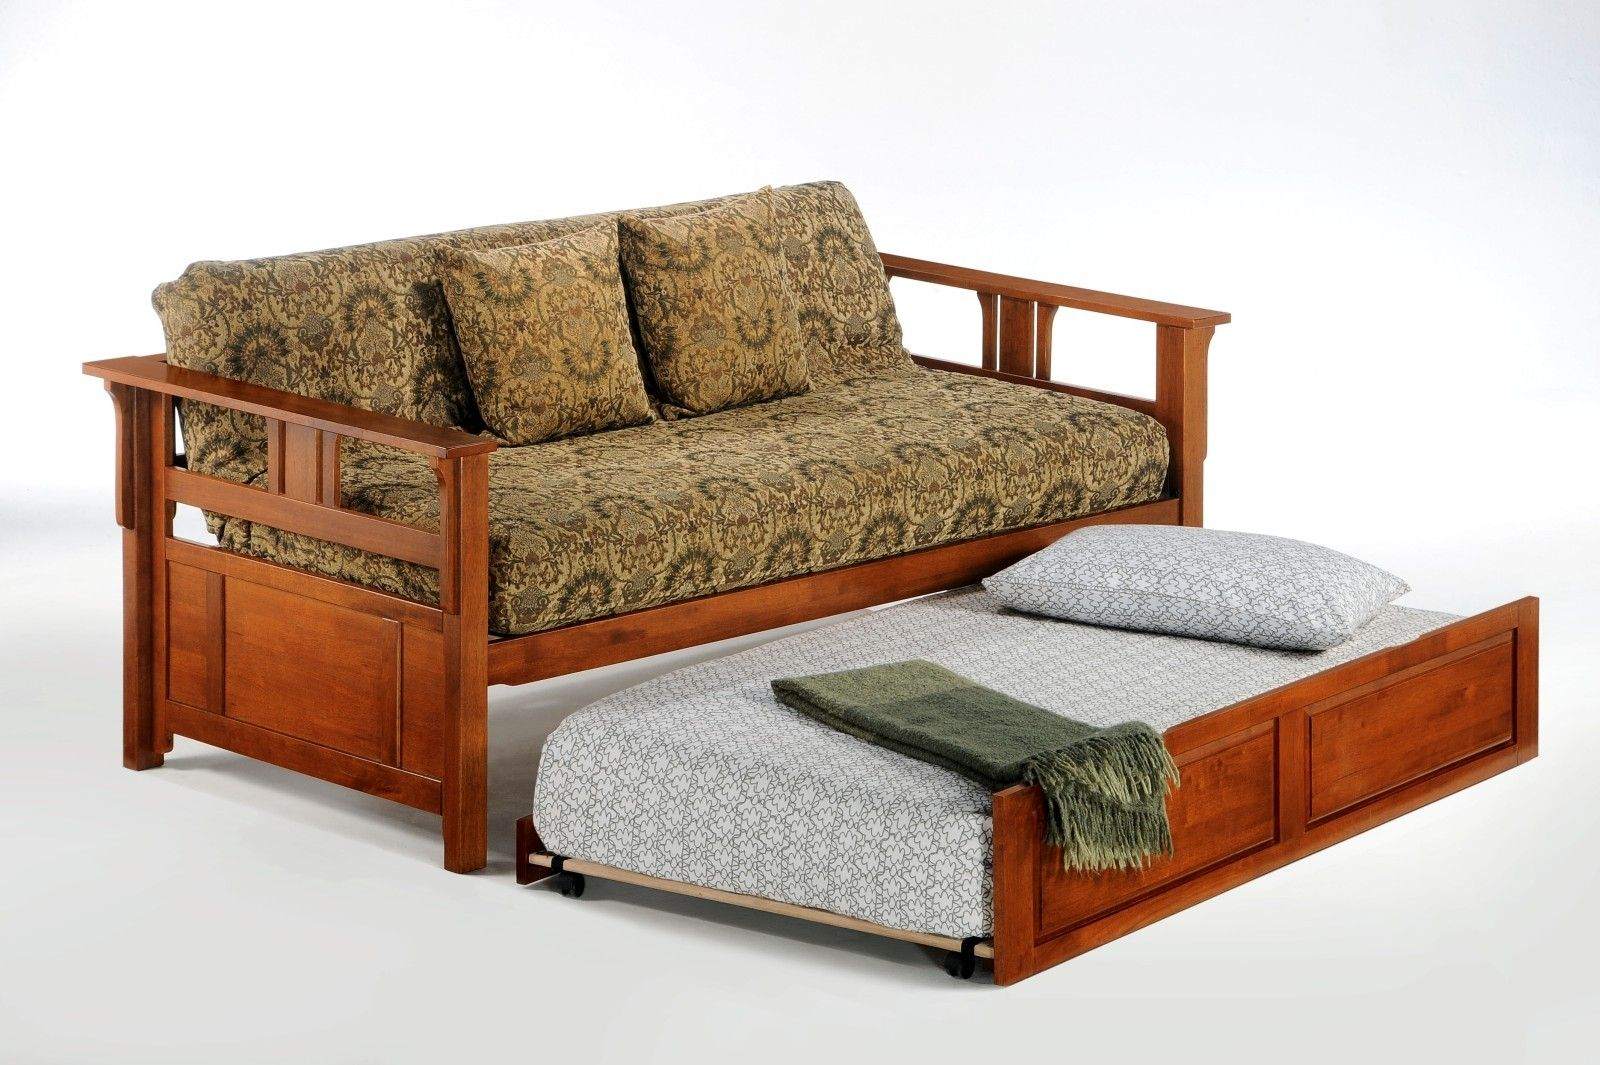 Daybed with trundle full size full size daybed with trundle  night and day teddy roosevelt daybed